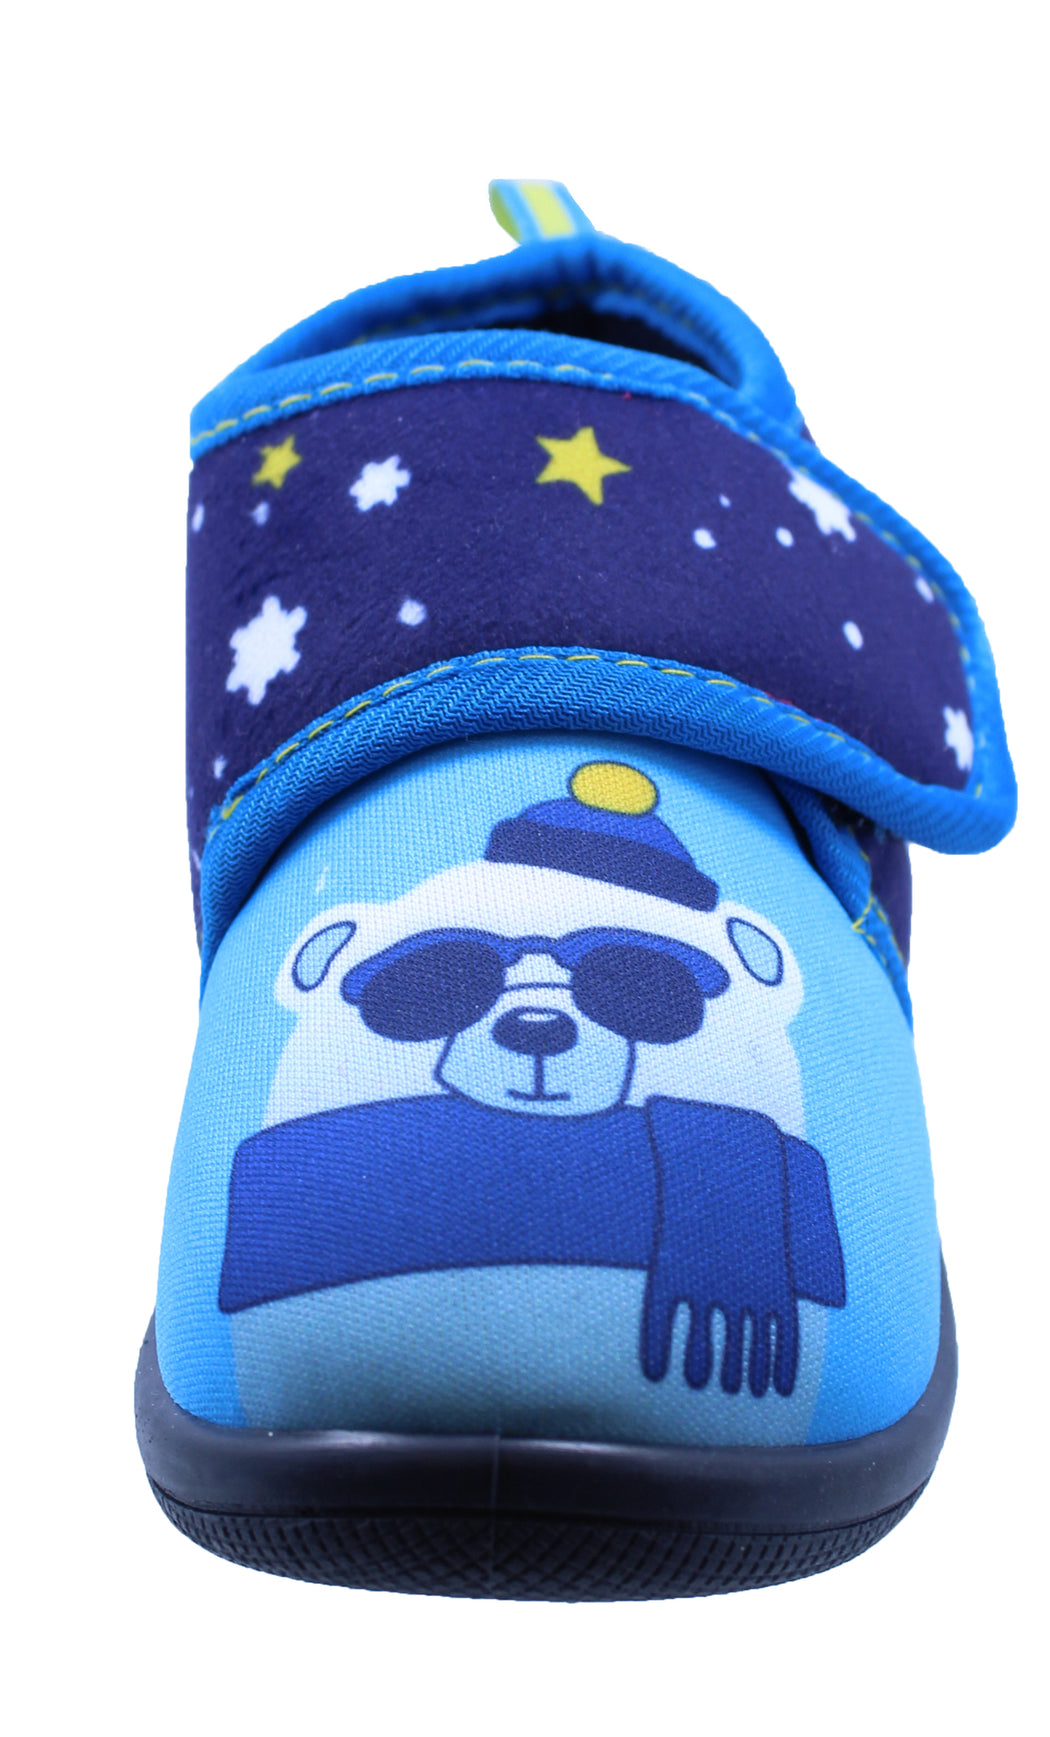 Toddler Polar Bear Daycare Slippers